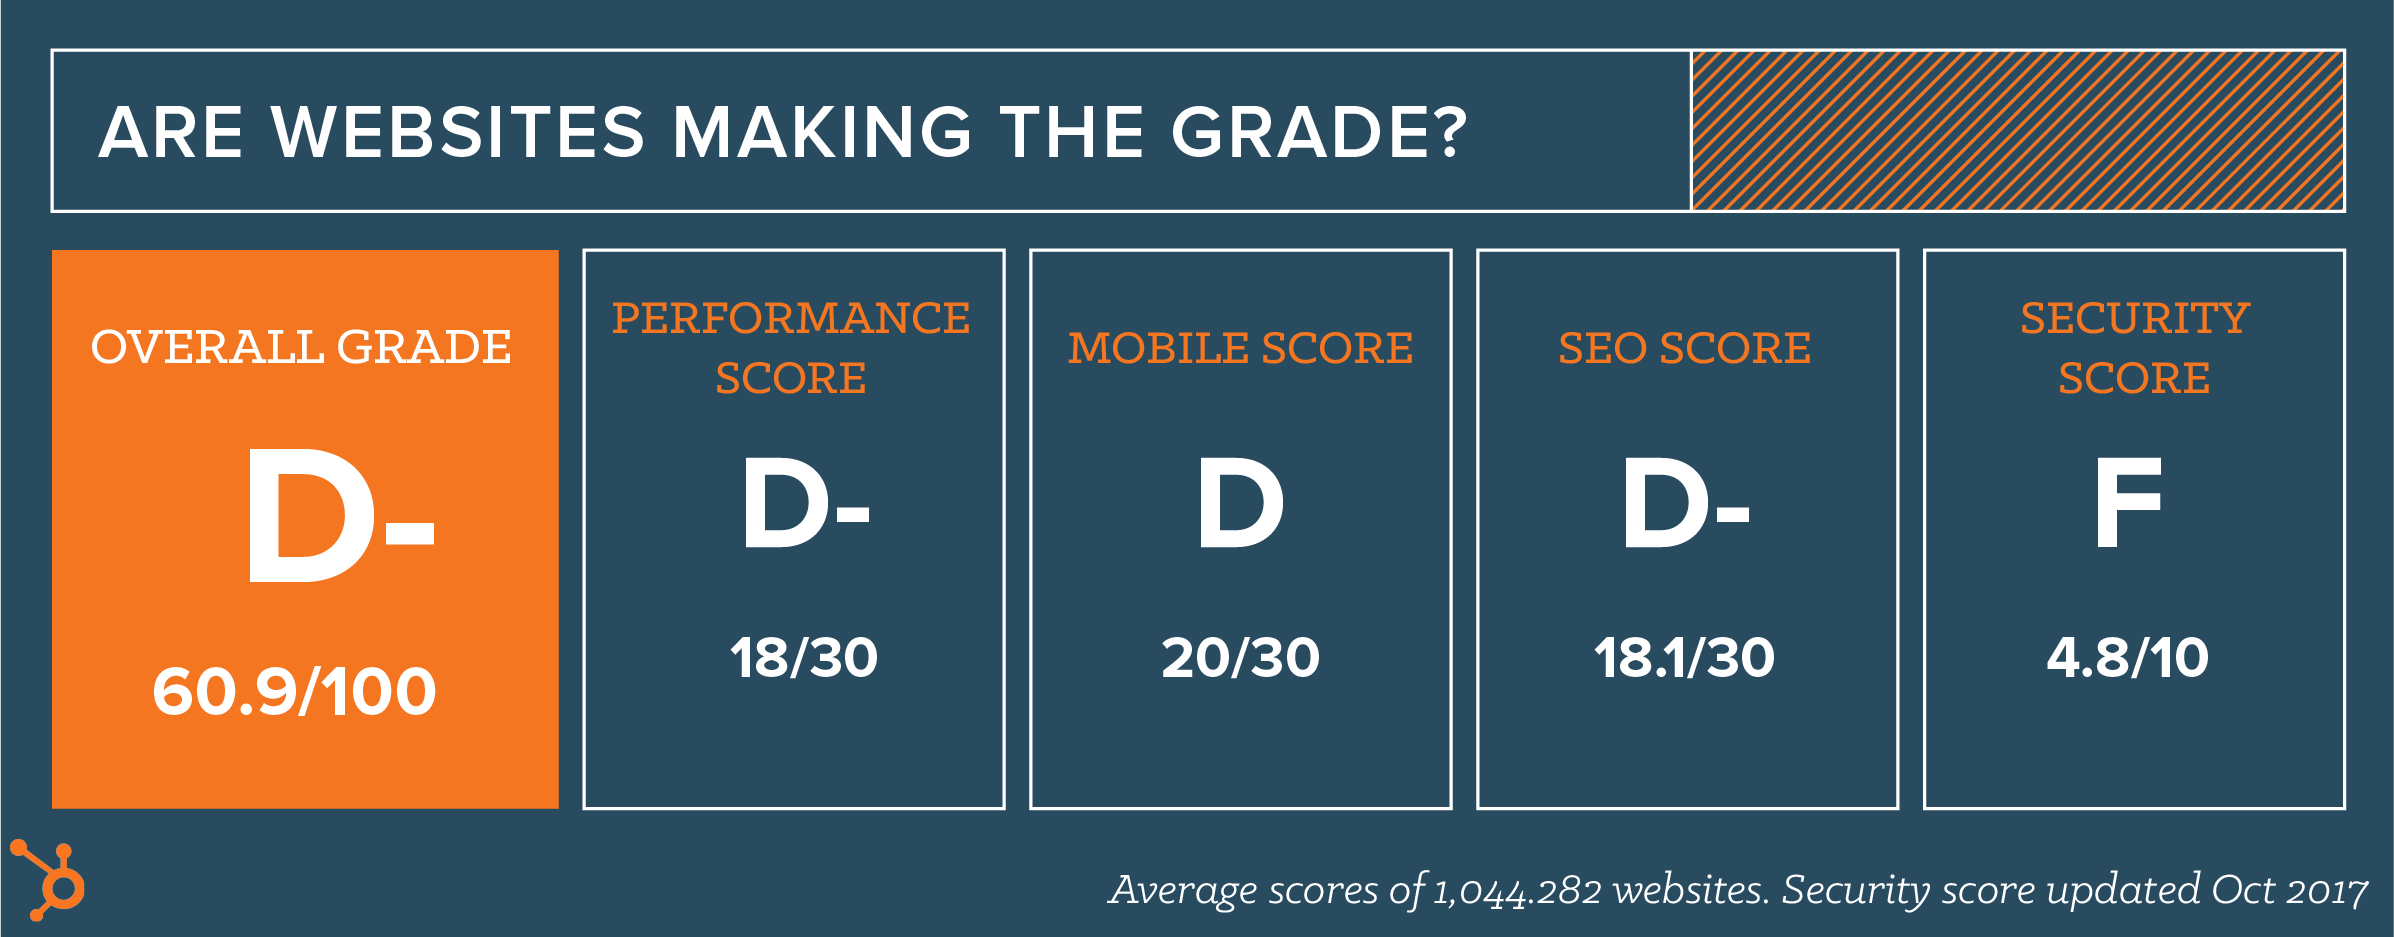 Does Your Website Make The Grade?